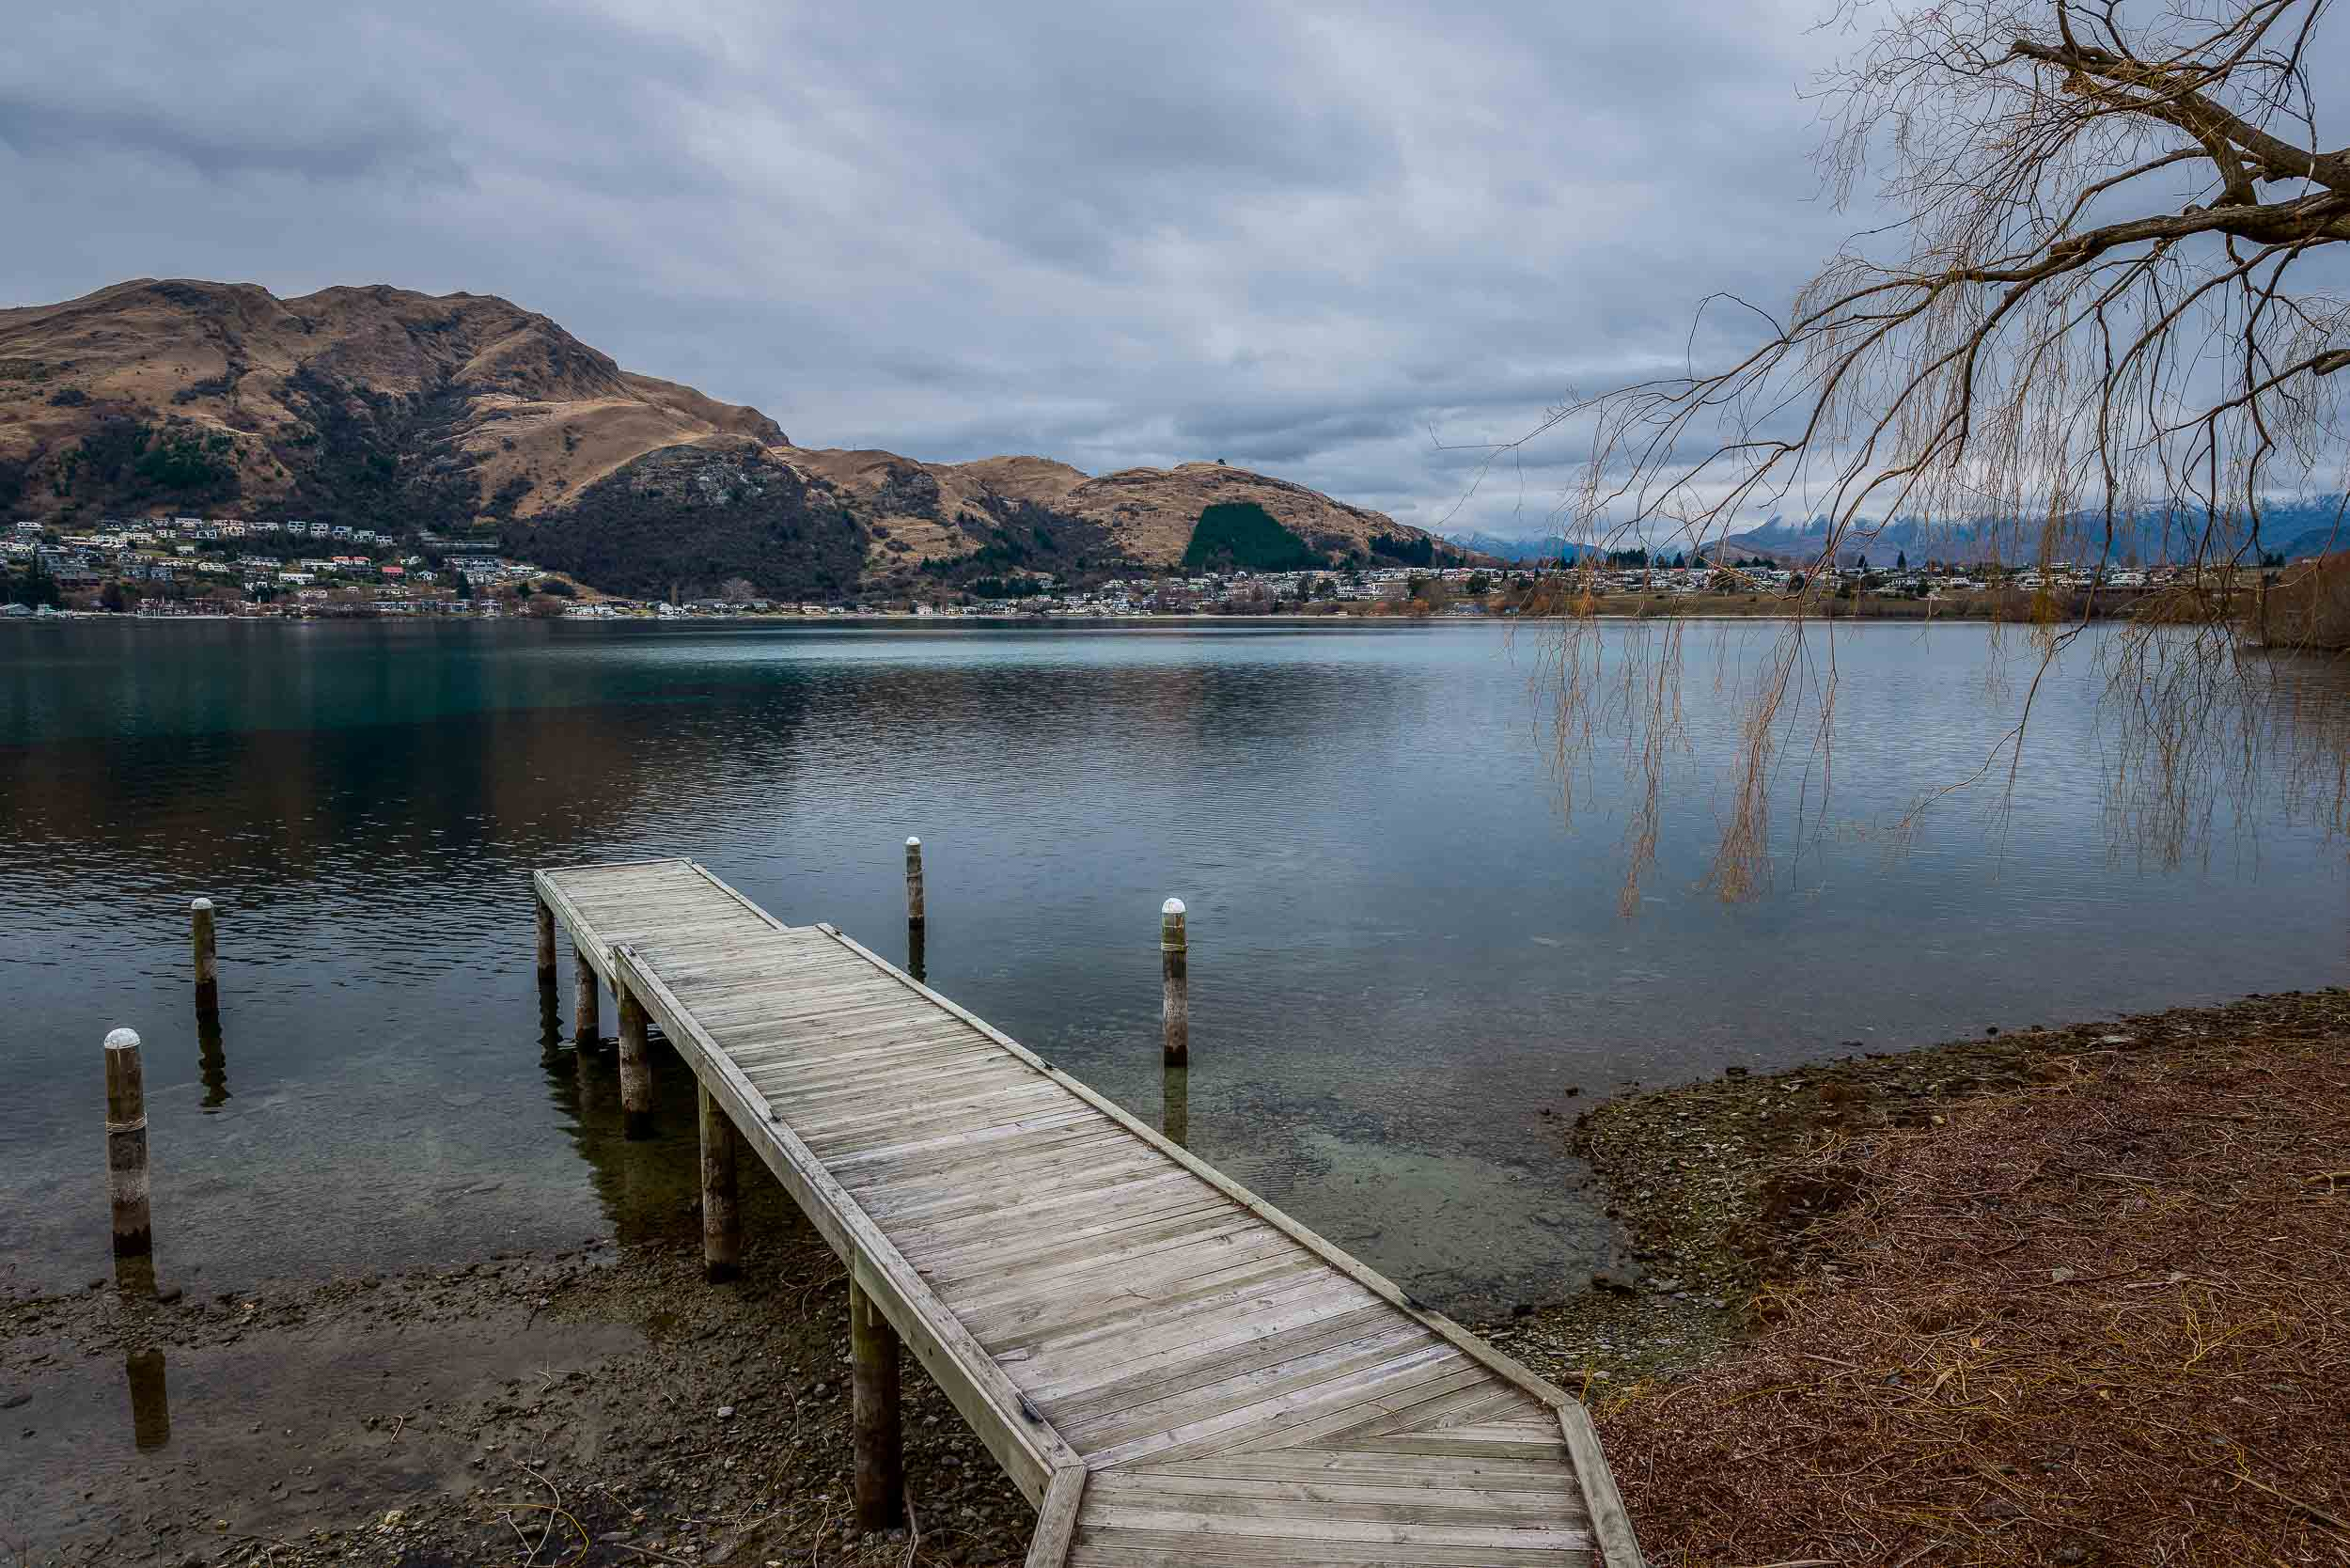 A narrow,    wooden pier    over the waters of    Lake Wakatipu    in    Queenstown, New Zealand   .